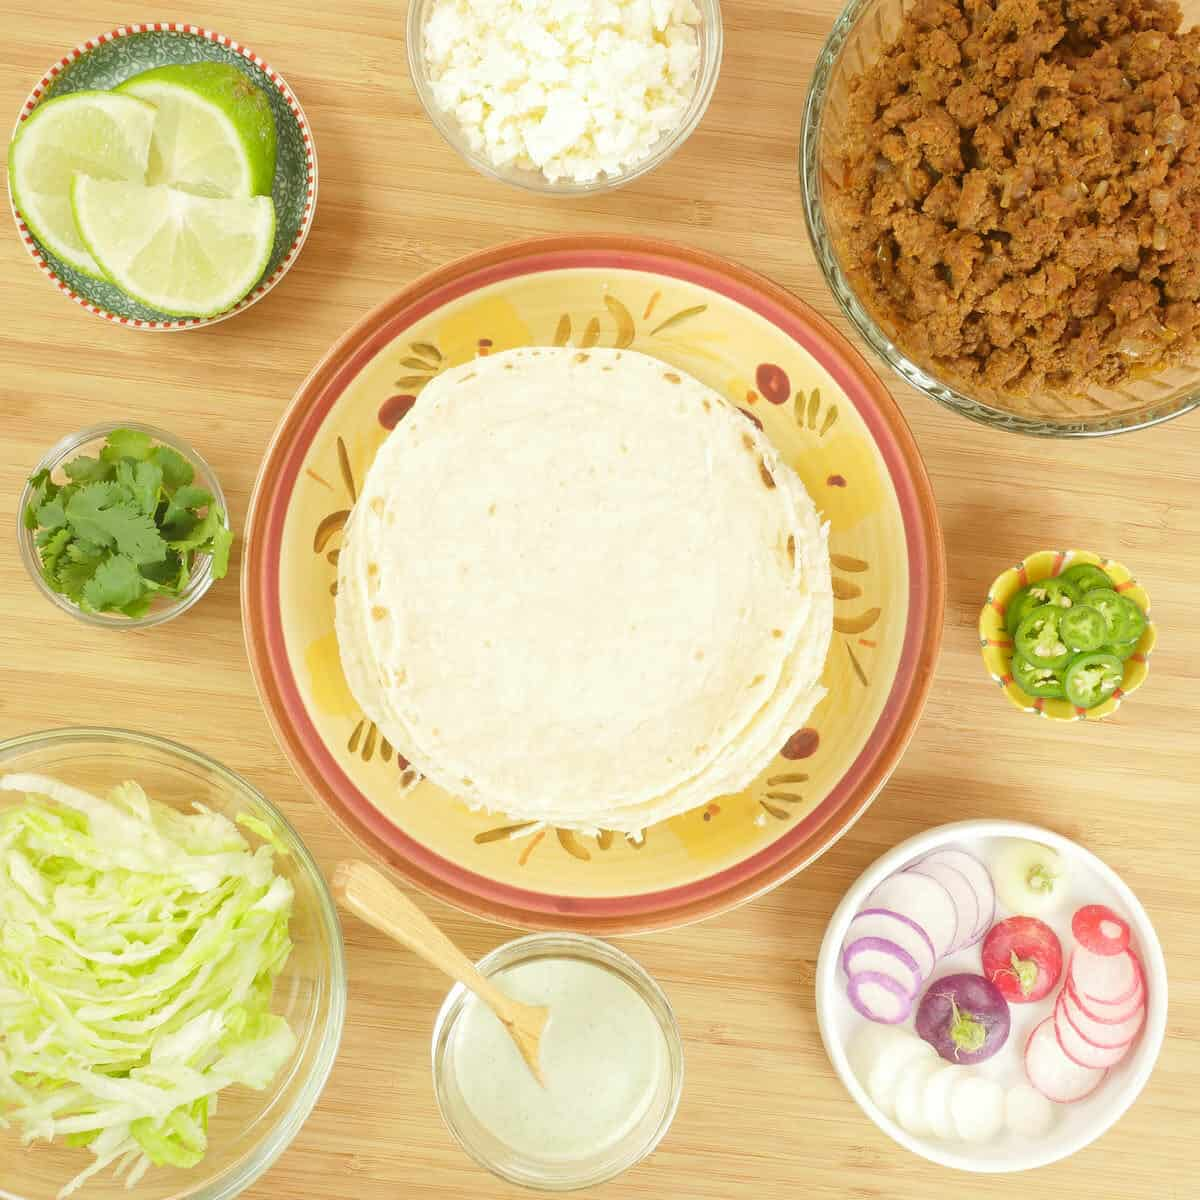 Taco Filling Ideas - Indianish Ingredients gathered and ready to be tacco'd.